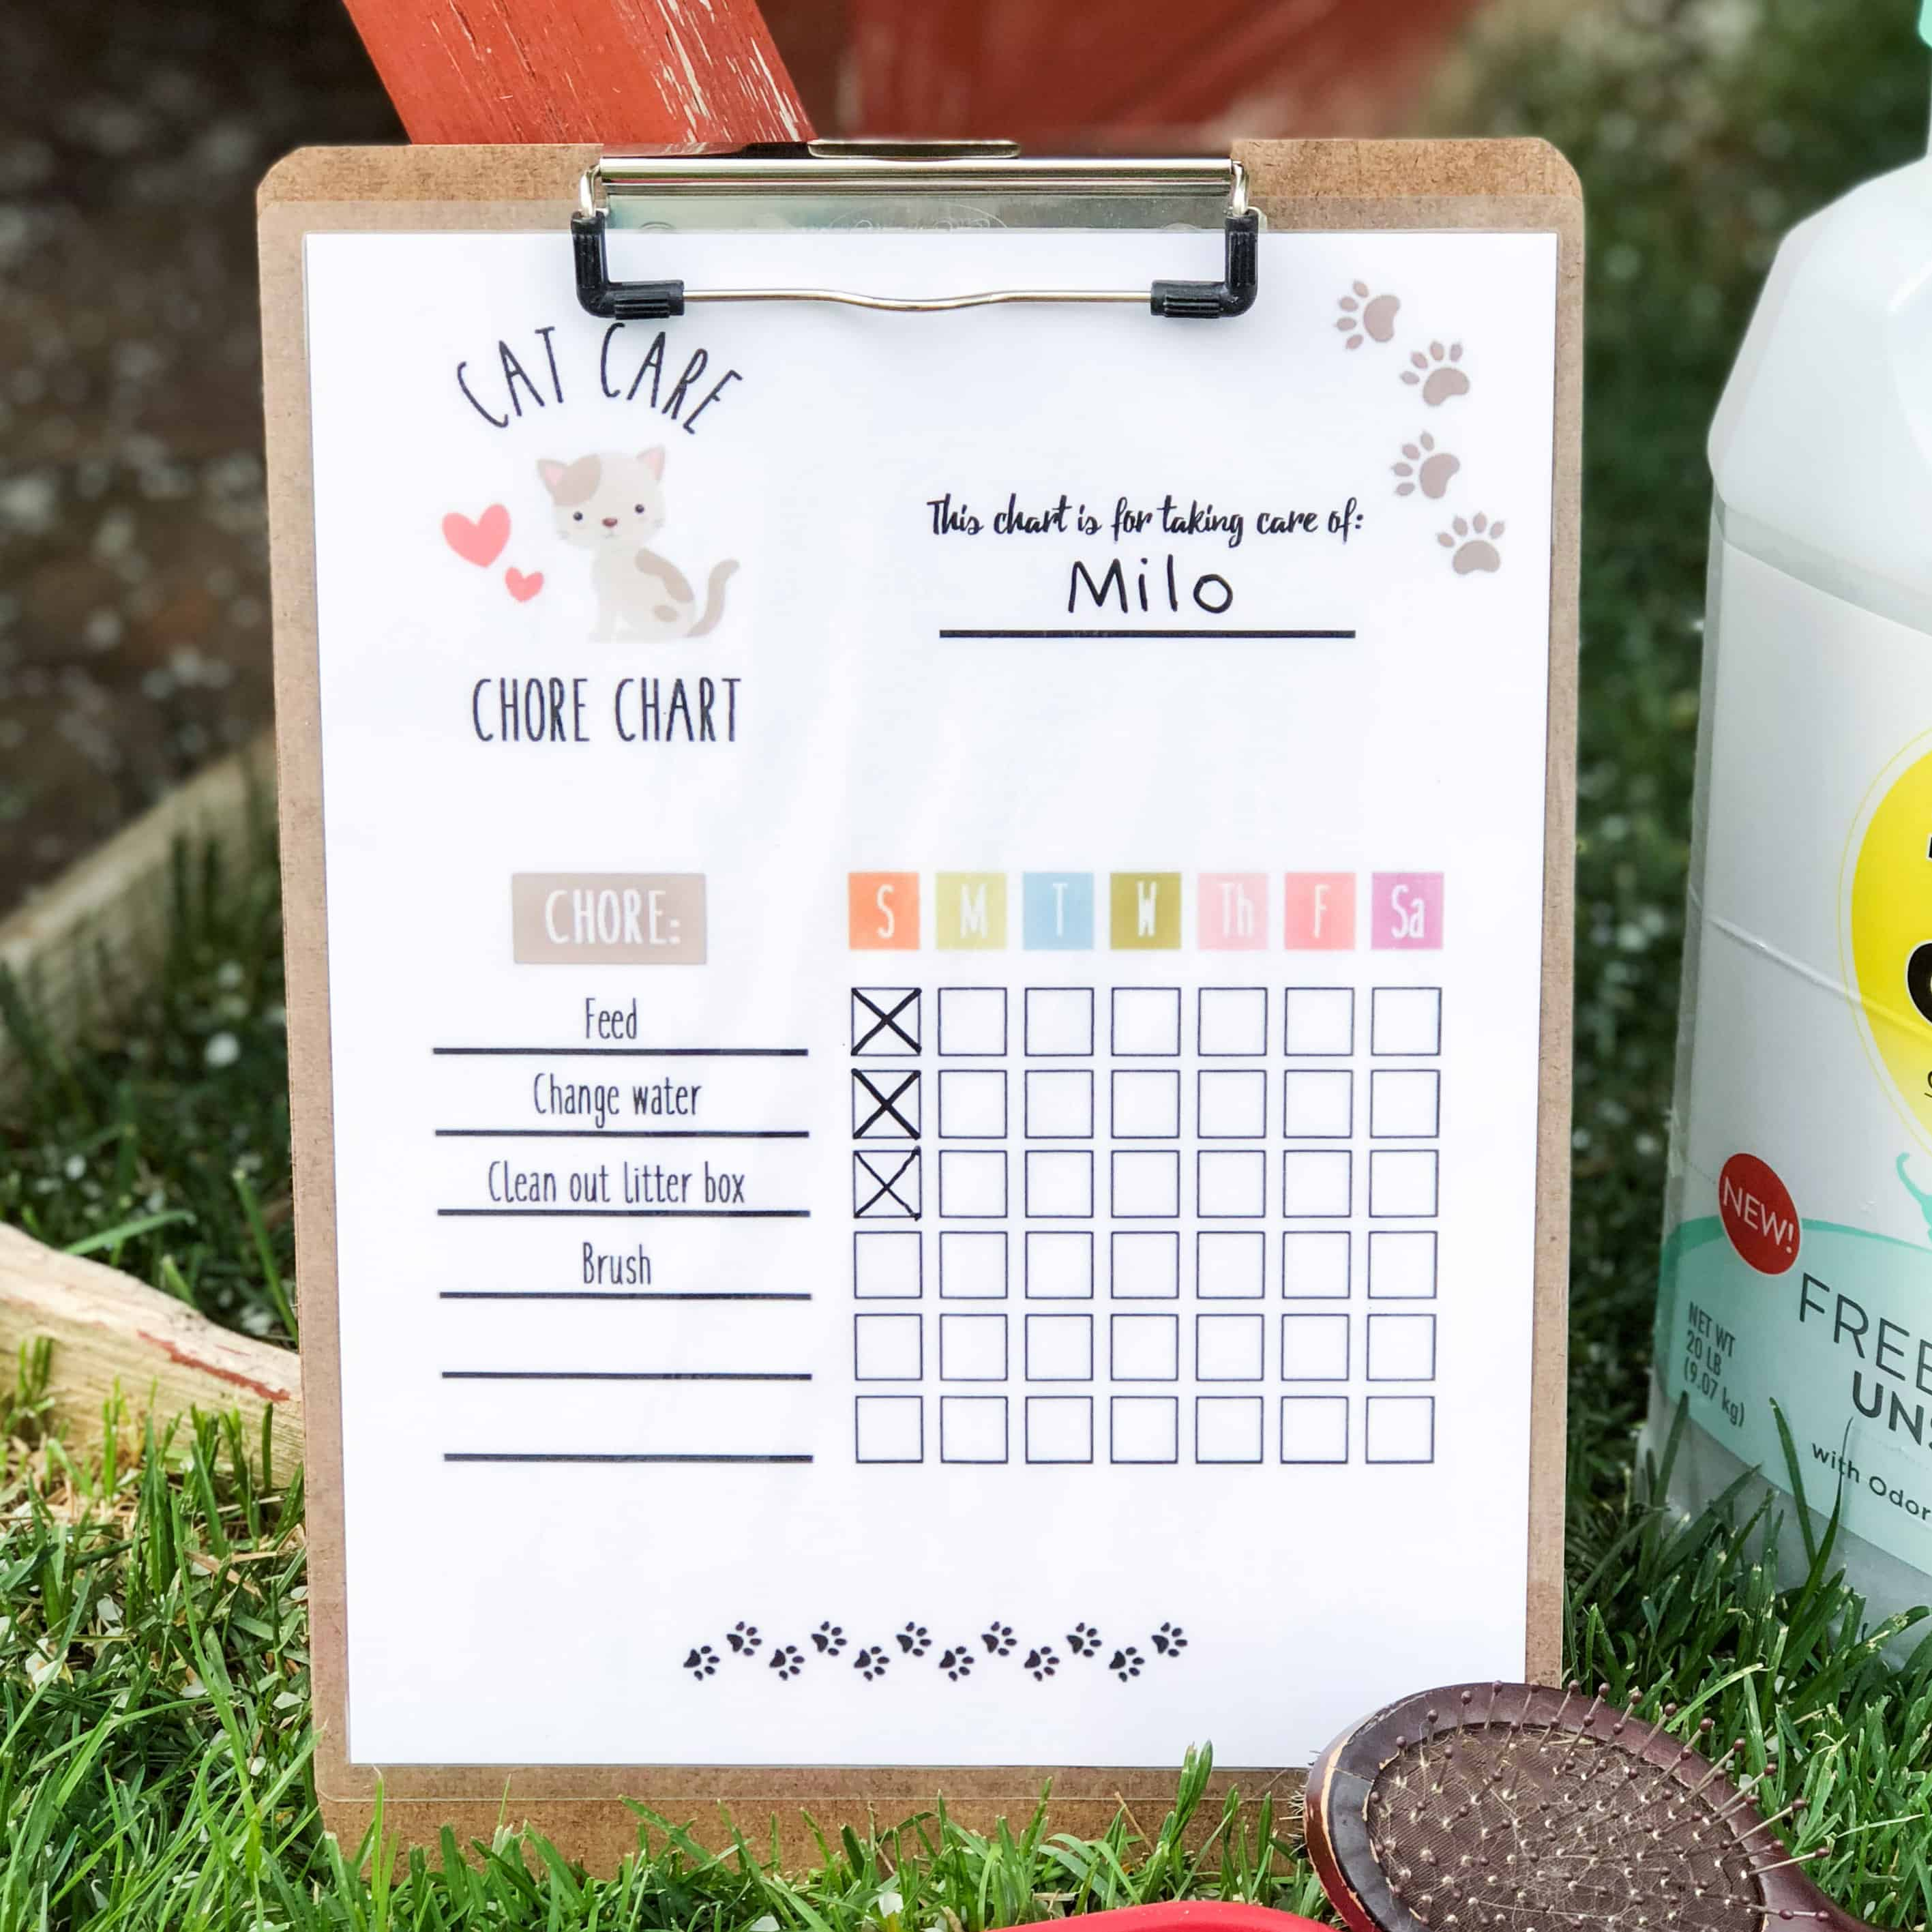 Help the kids have fun taking care of their favorite feline with this printable Cat Care Chore Chart!